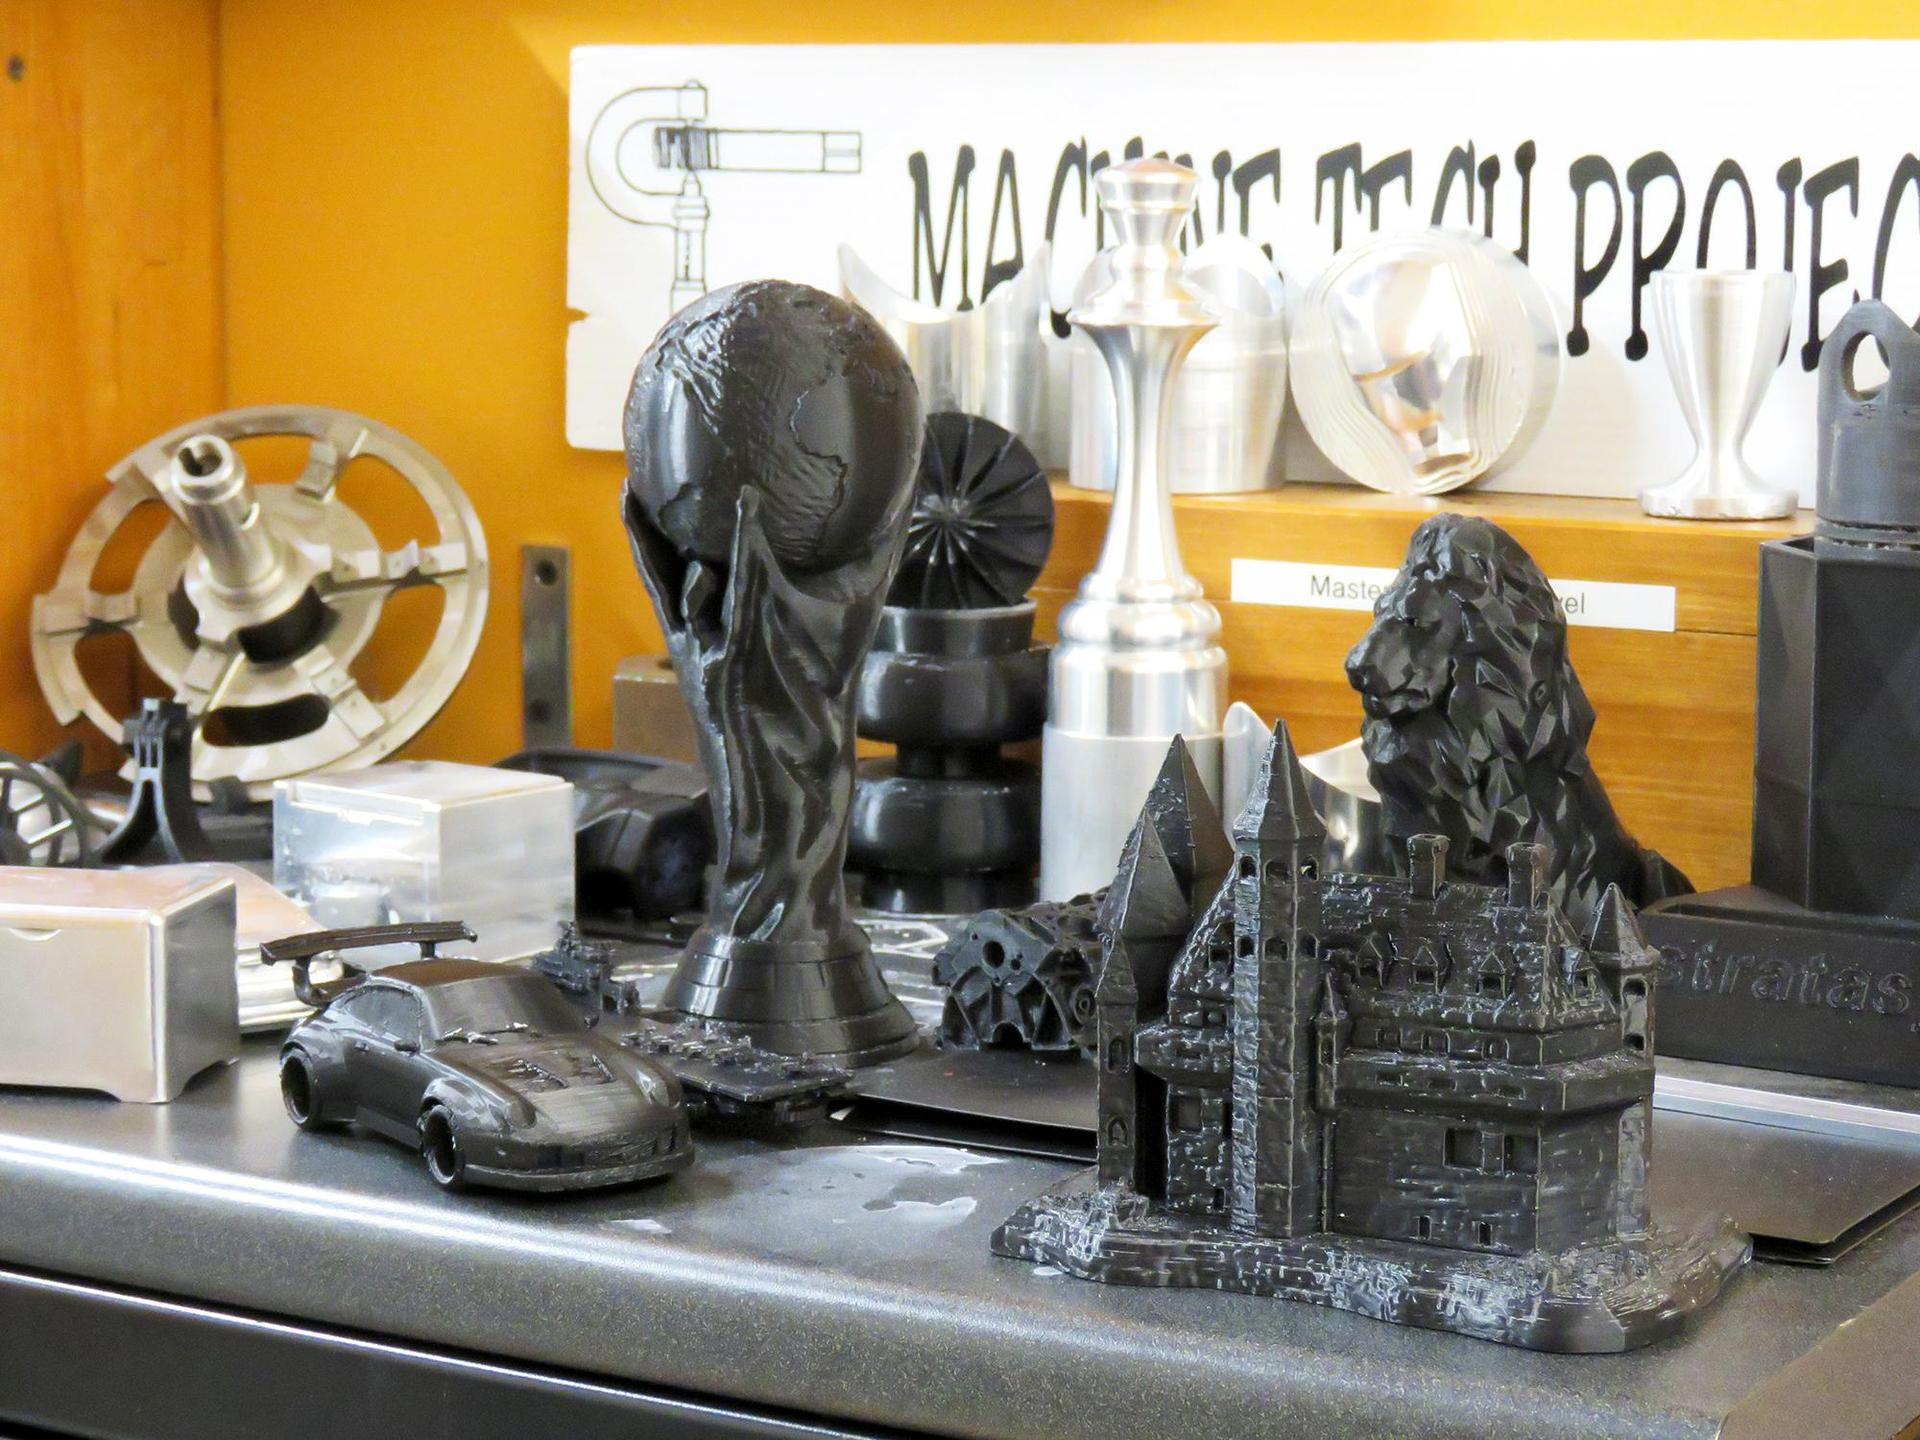 Items made by students using a 3D printer